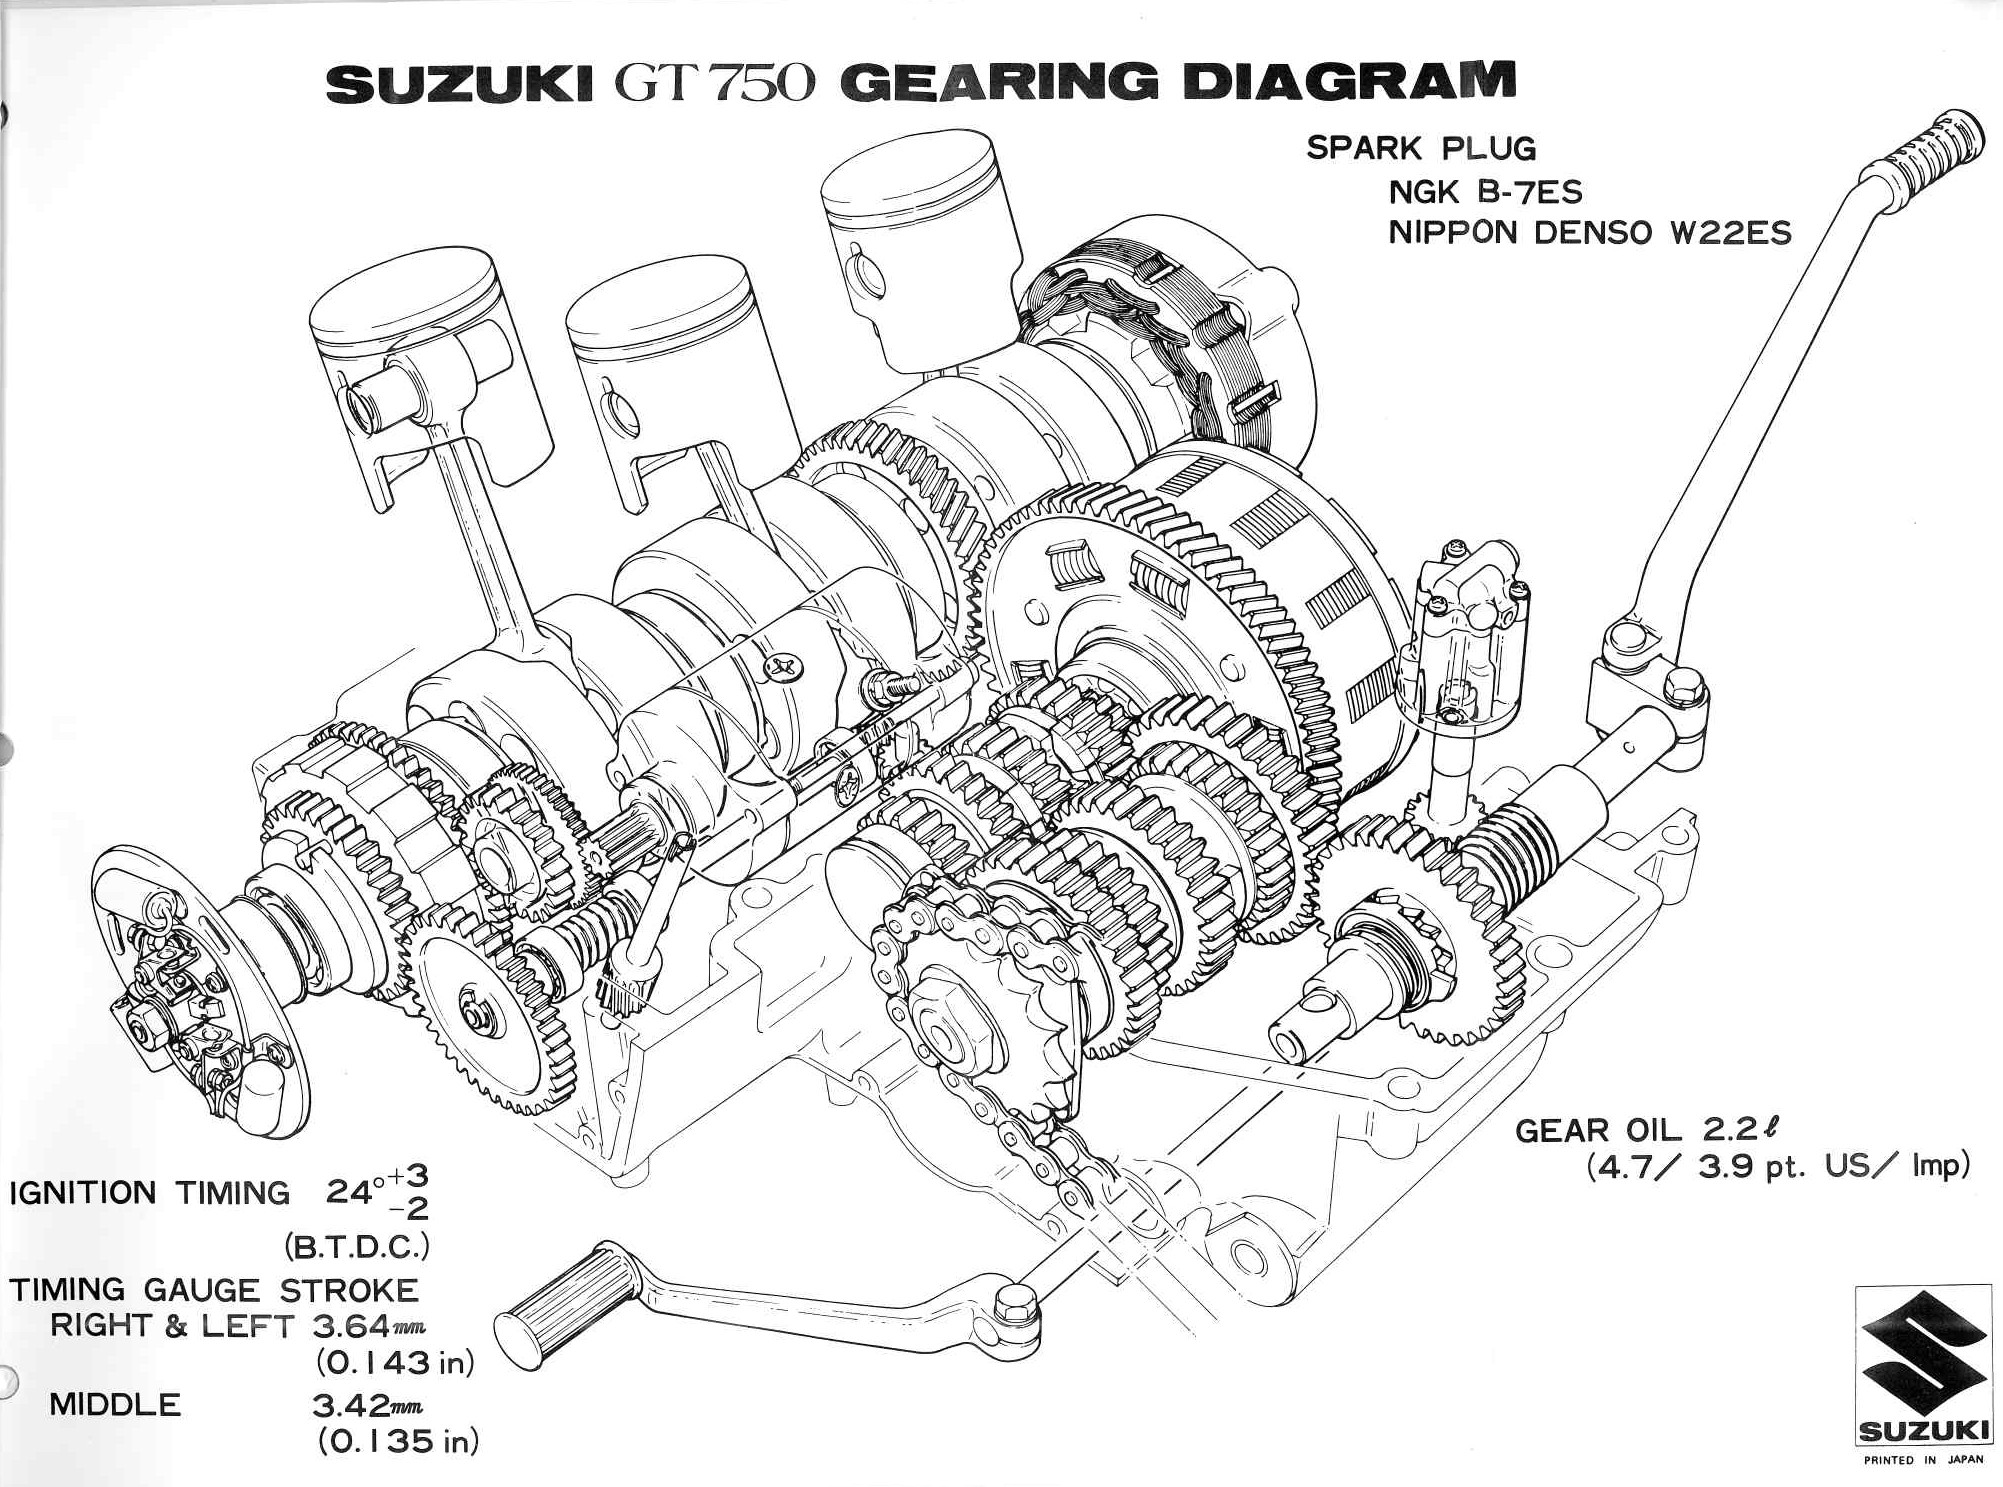 Gt750 Engine And Gearing Diagram The Kettle Club